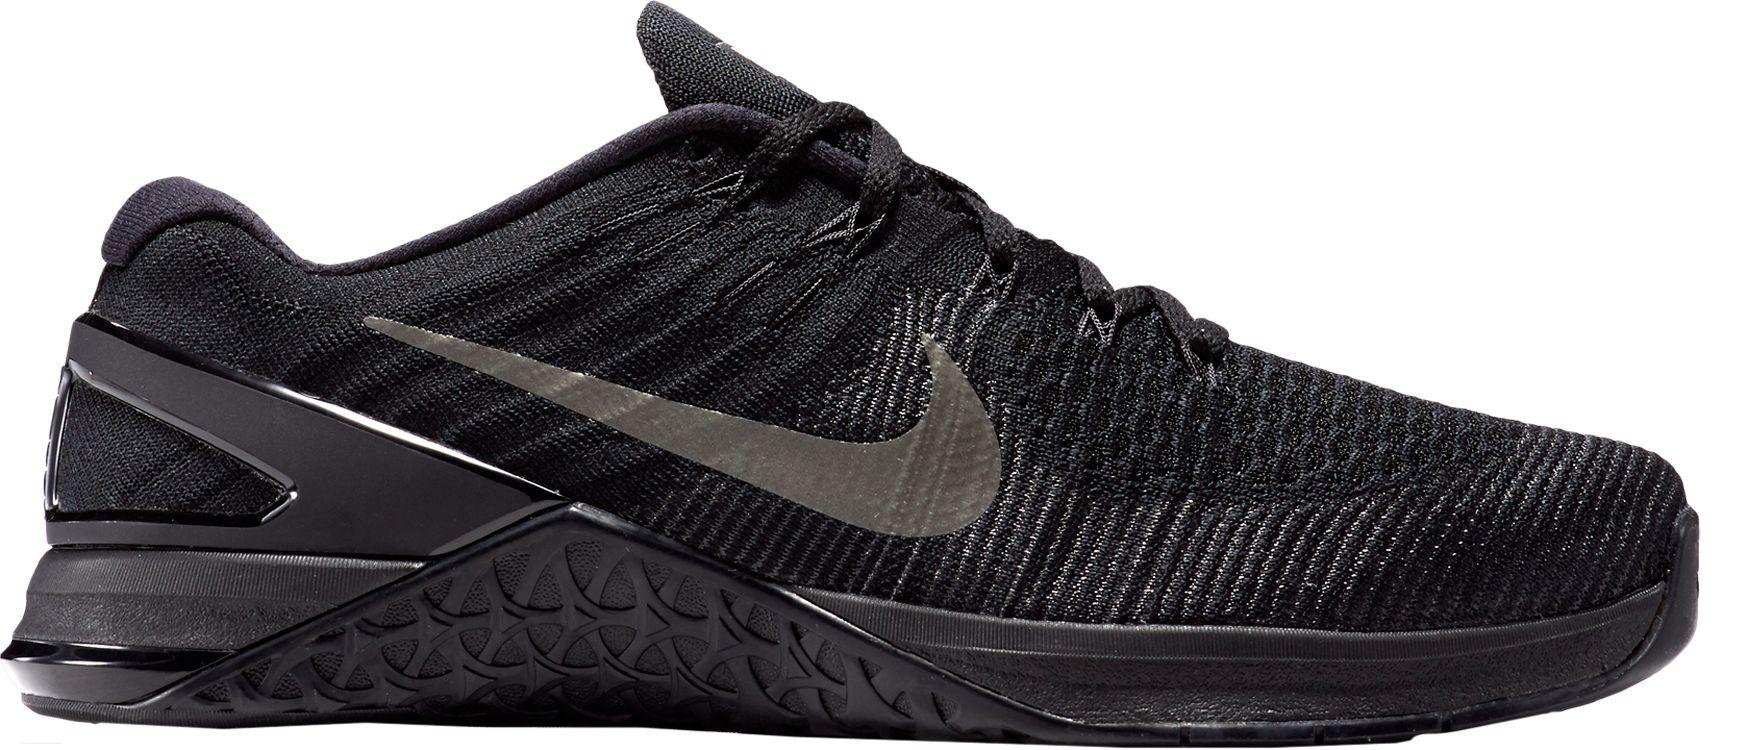 Lyst Nike Metcon Dsx Flyknit Training Shoes in Black for Men